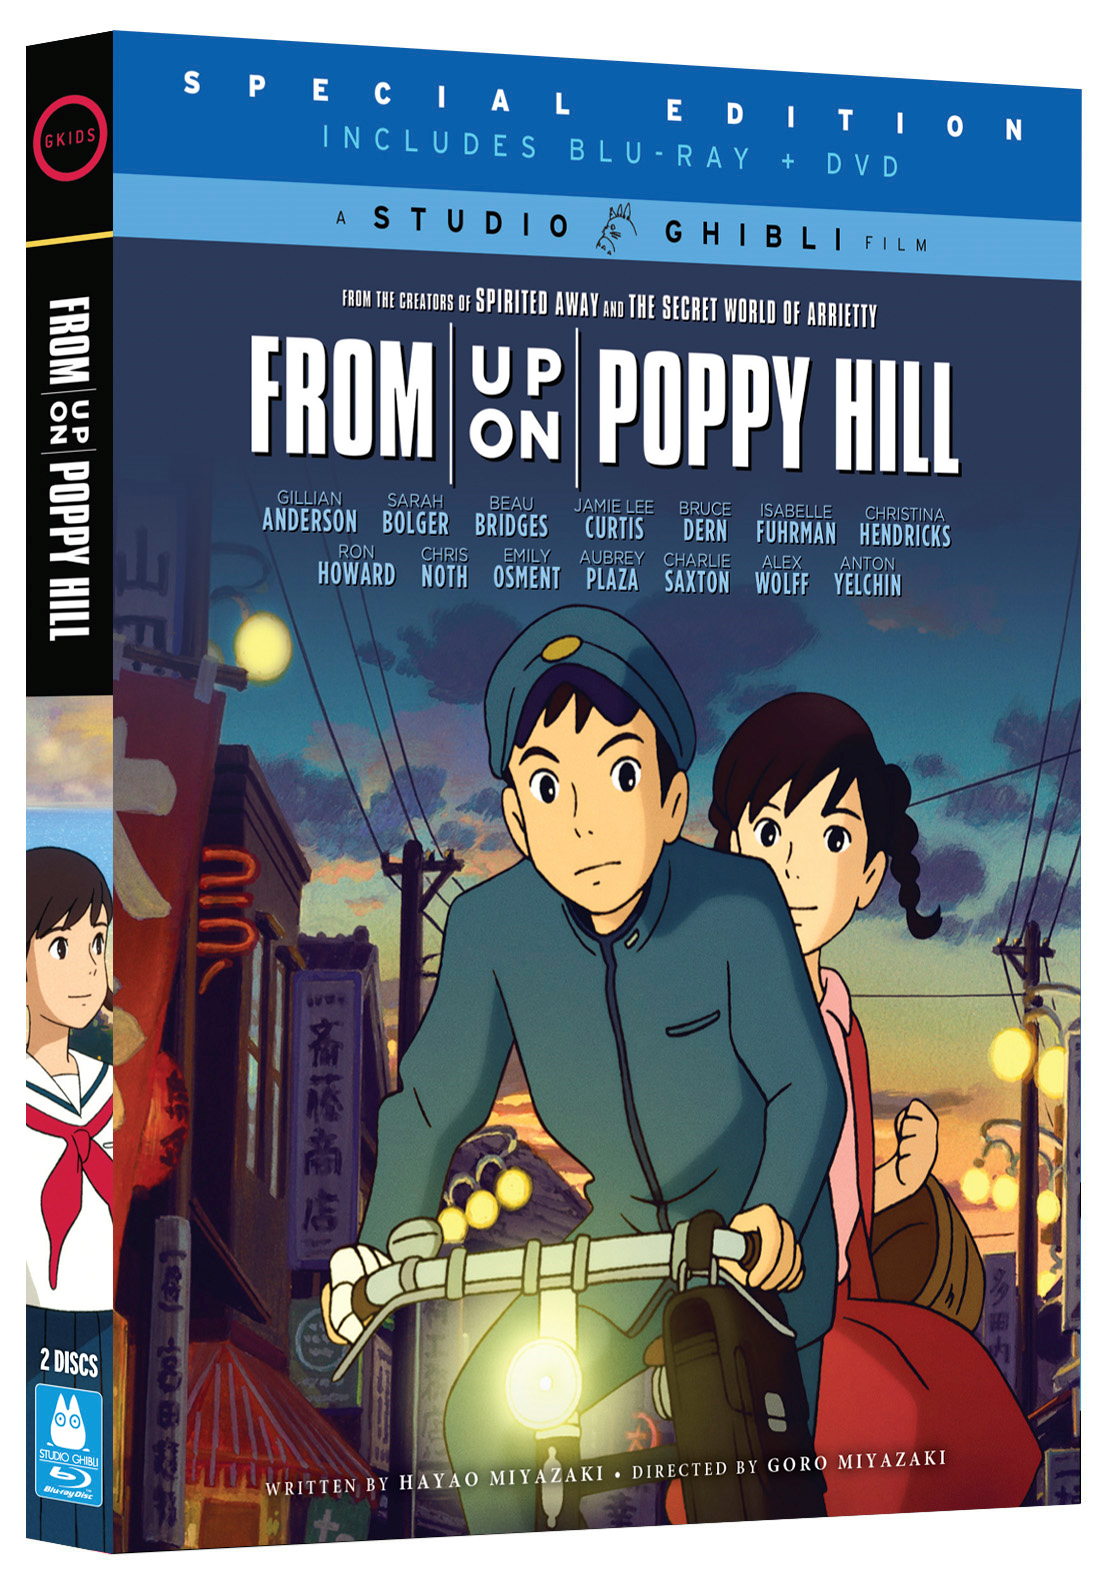 [UPDATED WITH WINNERS] Giveaway: Two Blu-ray/DVD Combo Packs of Studio Ghibli's 'From Up on Poppy Hill'